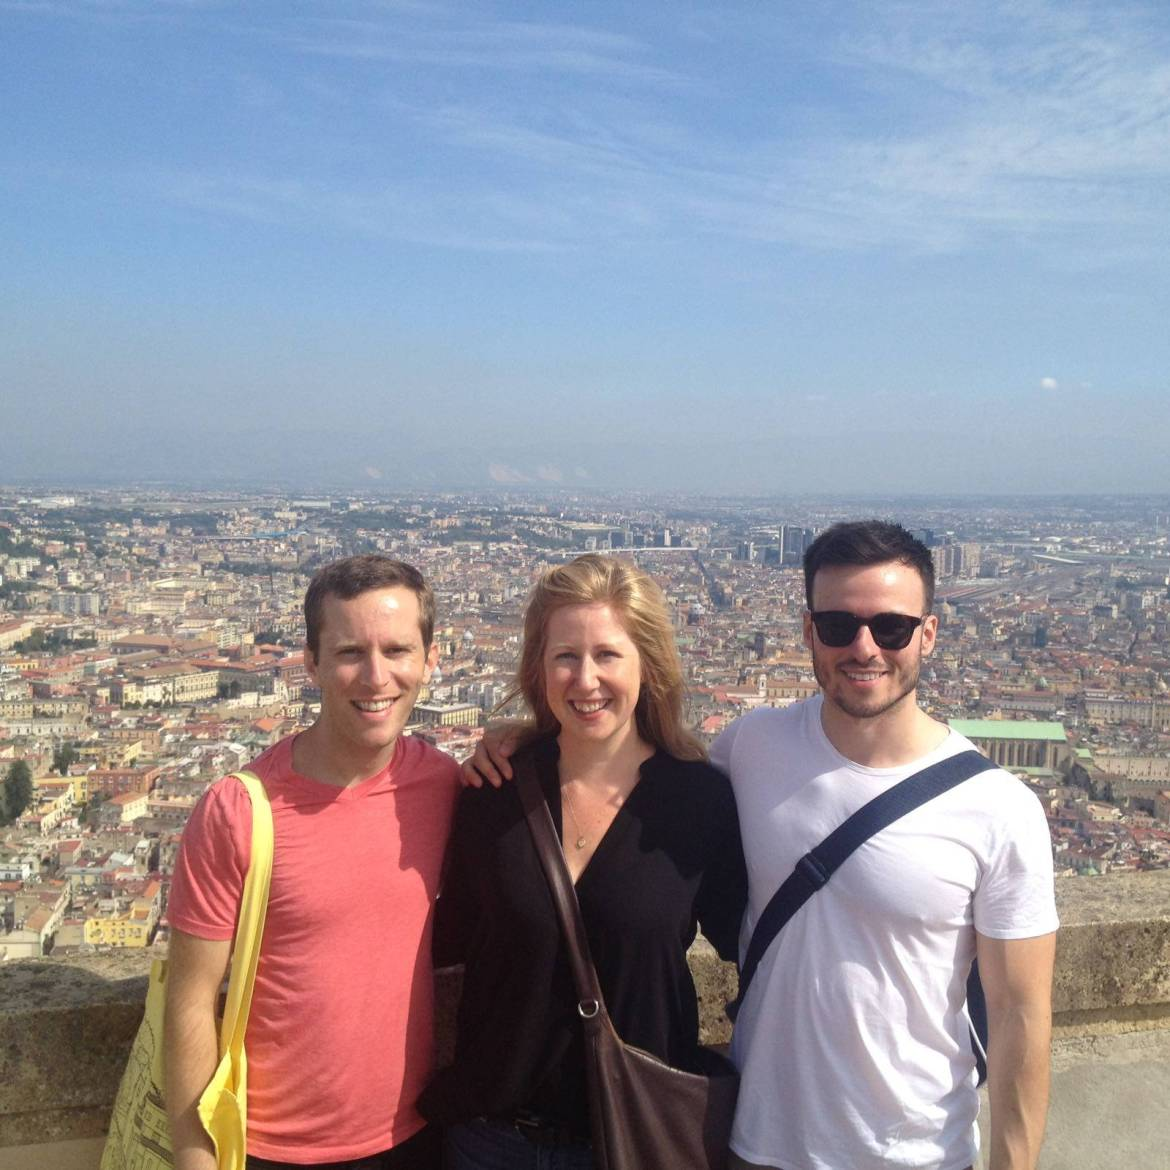 Mike, Lauren, and I atop Castel Sant'Elmo